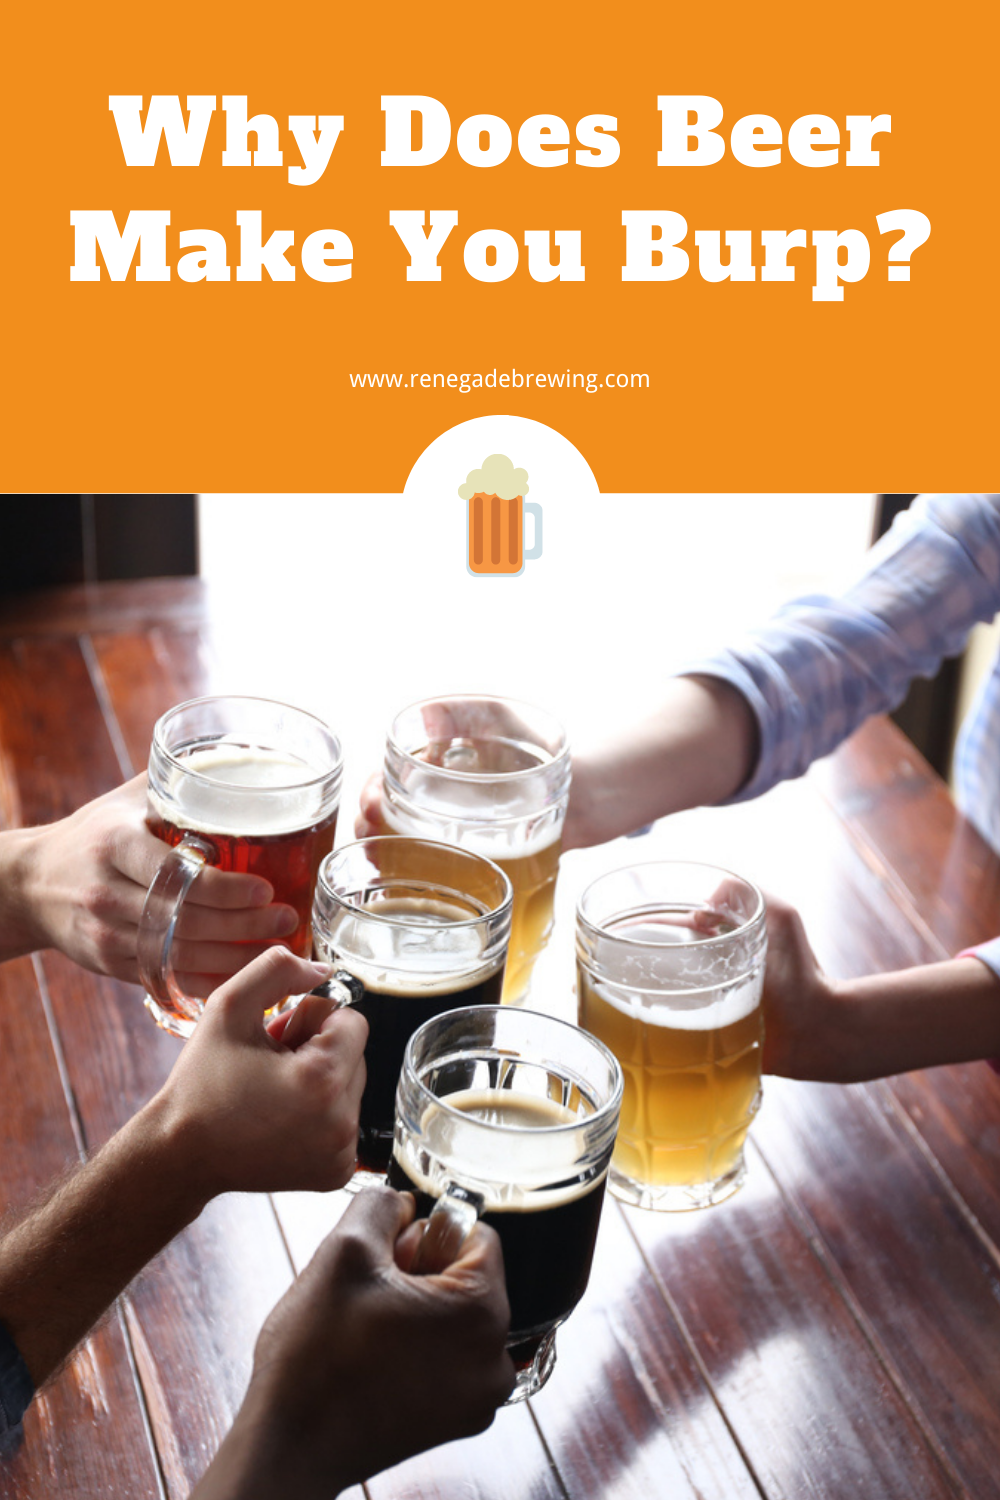 Why Does Beer Make You Burp (5 Tips to Prevent) 1